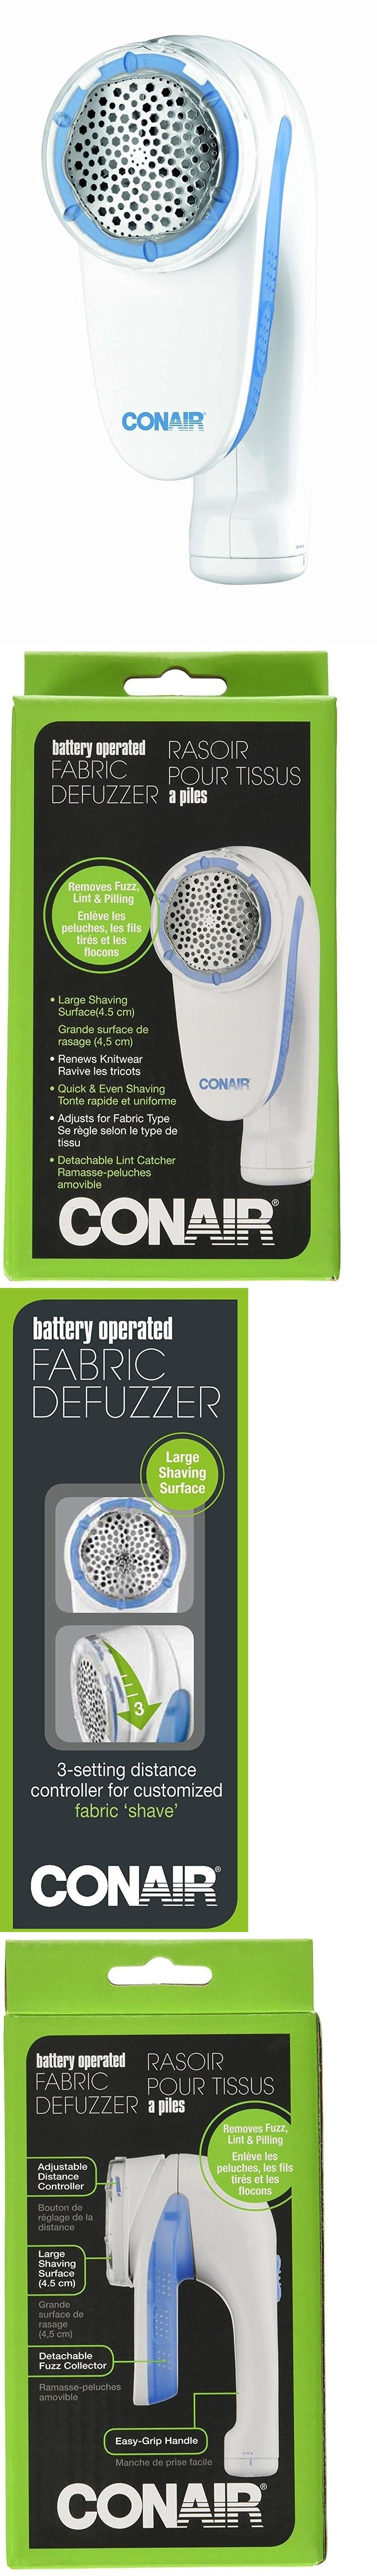 Lint Removers and Lint Shavers 170626: Fabric Shaver Defuzzer Battery Operated Conair Lint Fuzz Remover Plastic White -> BUY IT NOW ONLY: $49.41 on eBay!